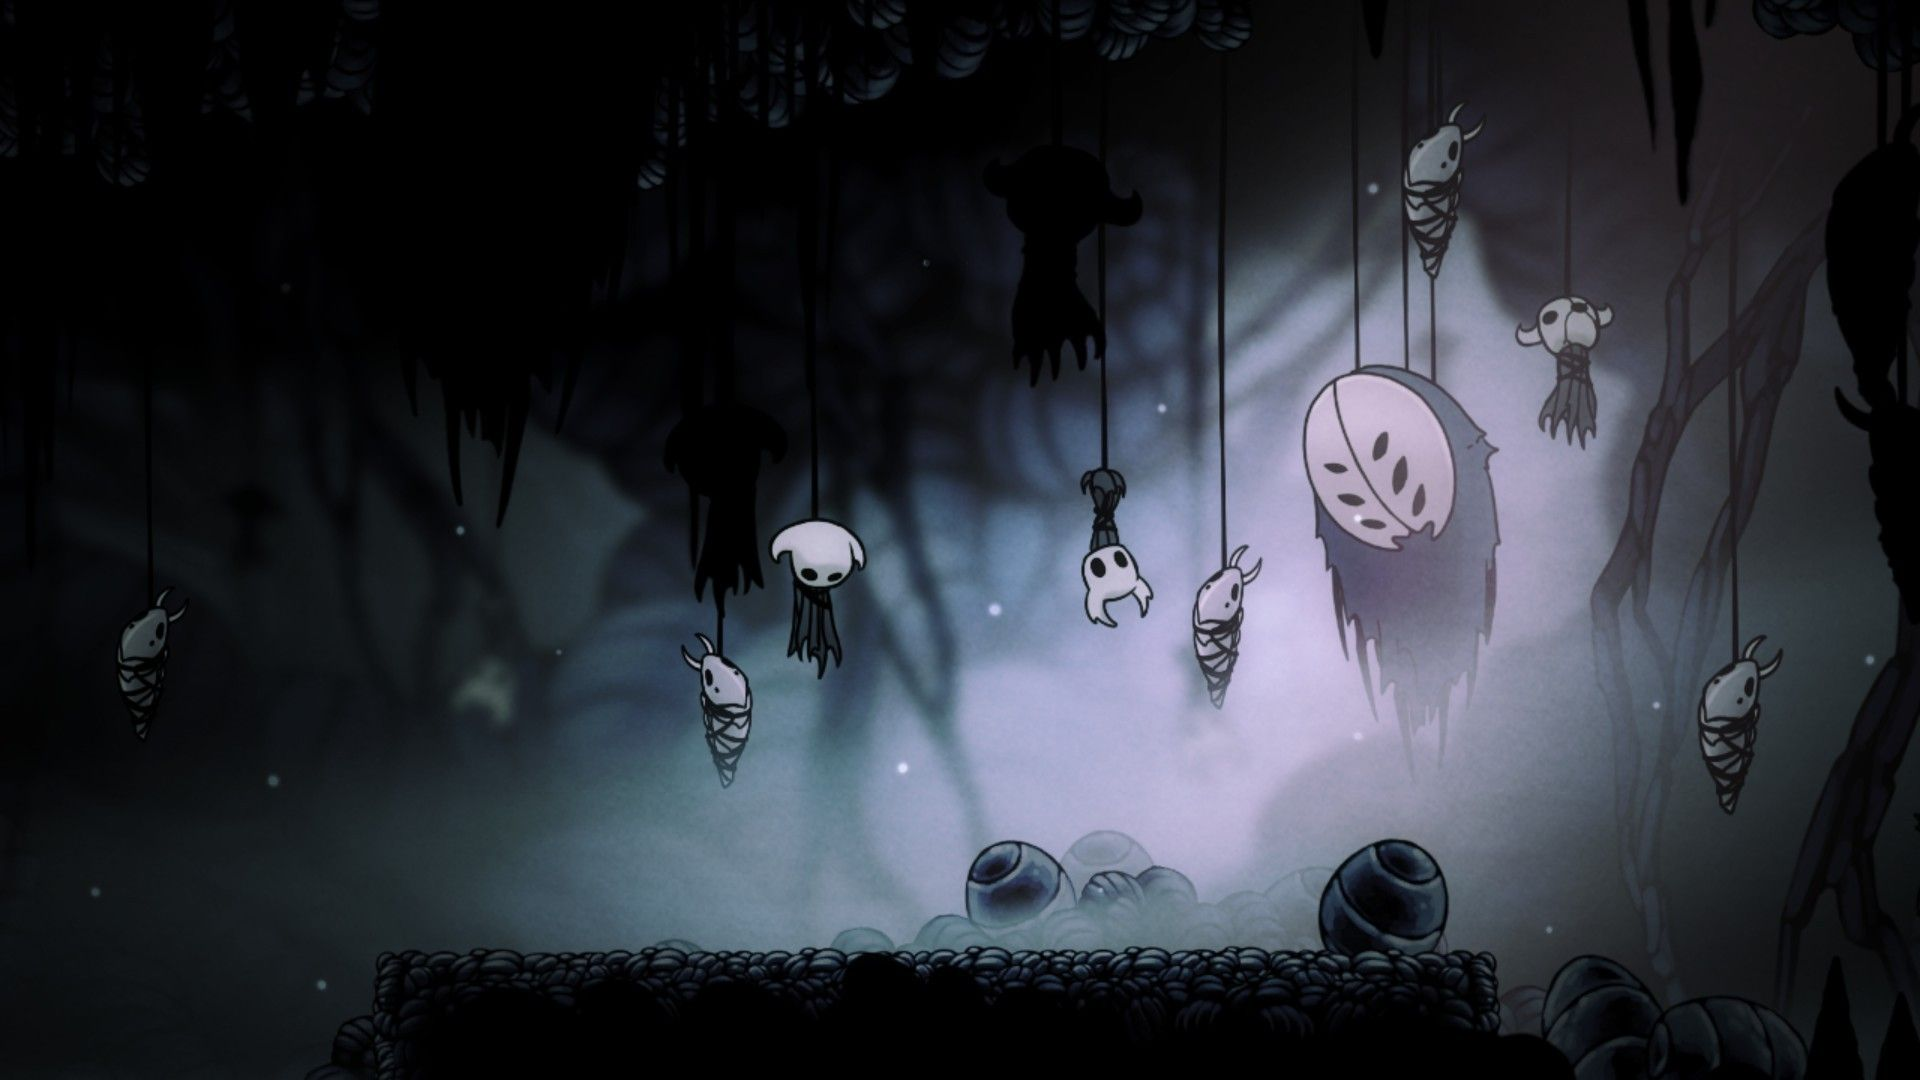 Hd Hollow Knight Gameplay Backgrounds Best Wallpaper Hd Best Wallpaper Hd Hd Cute Wallpapers Screensaver Pictures